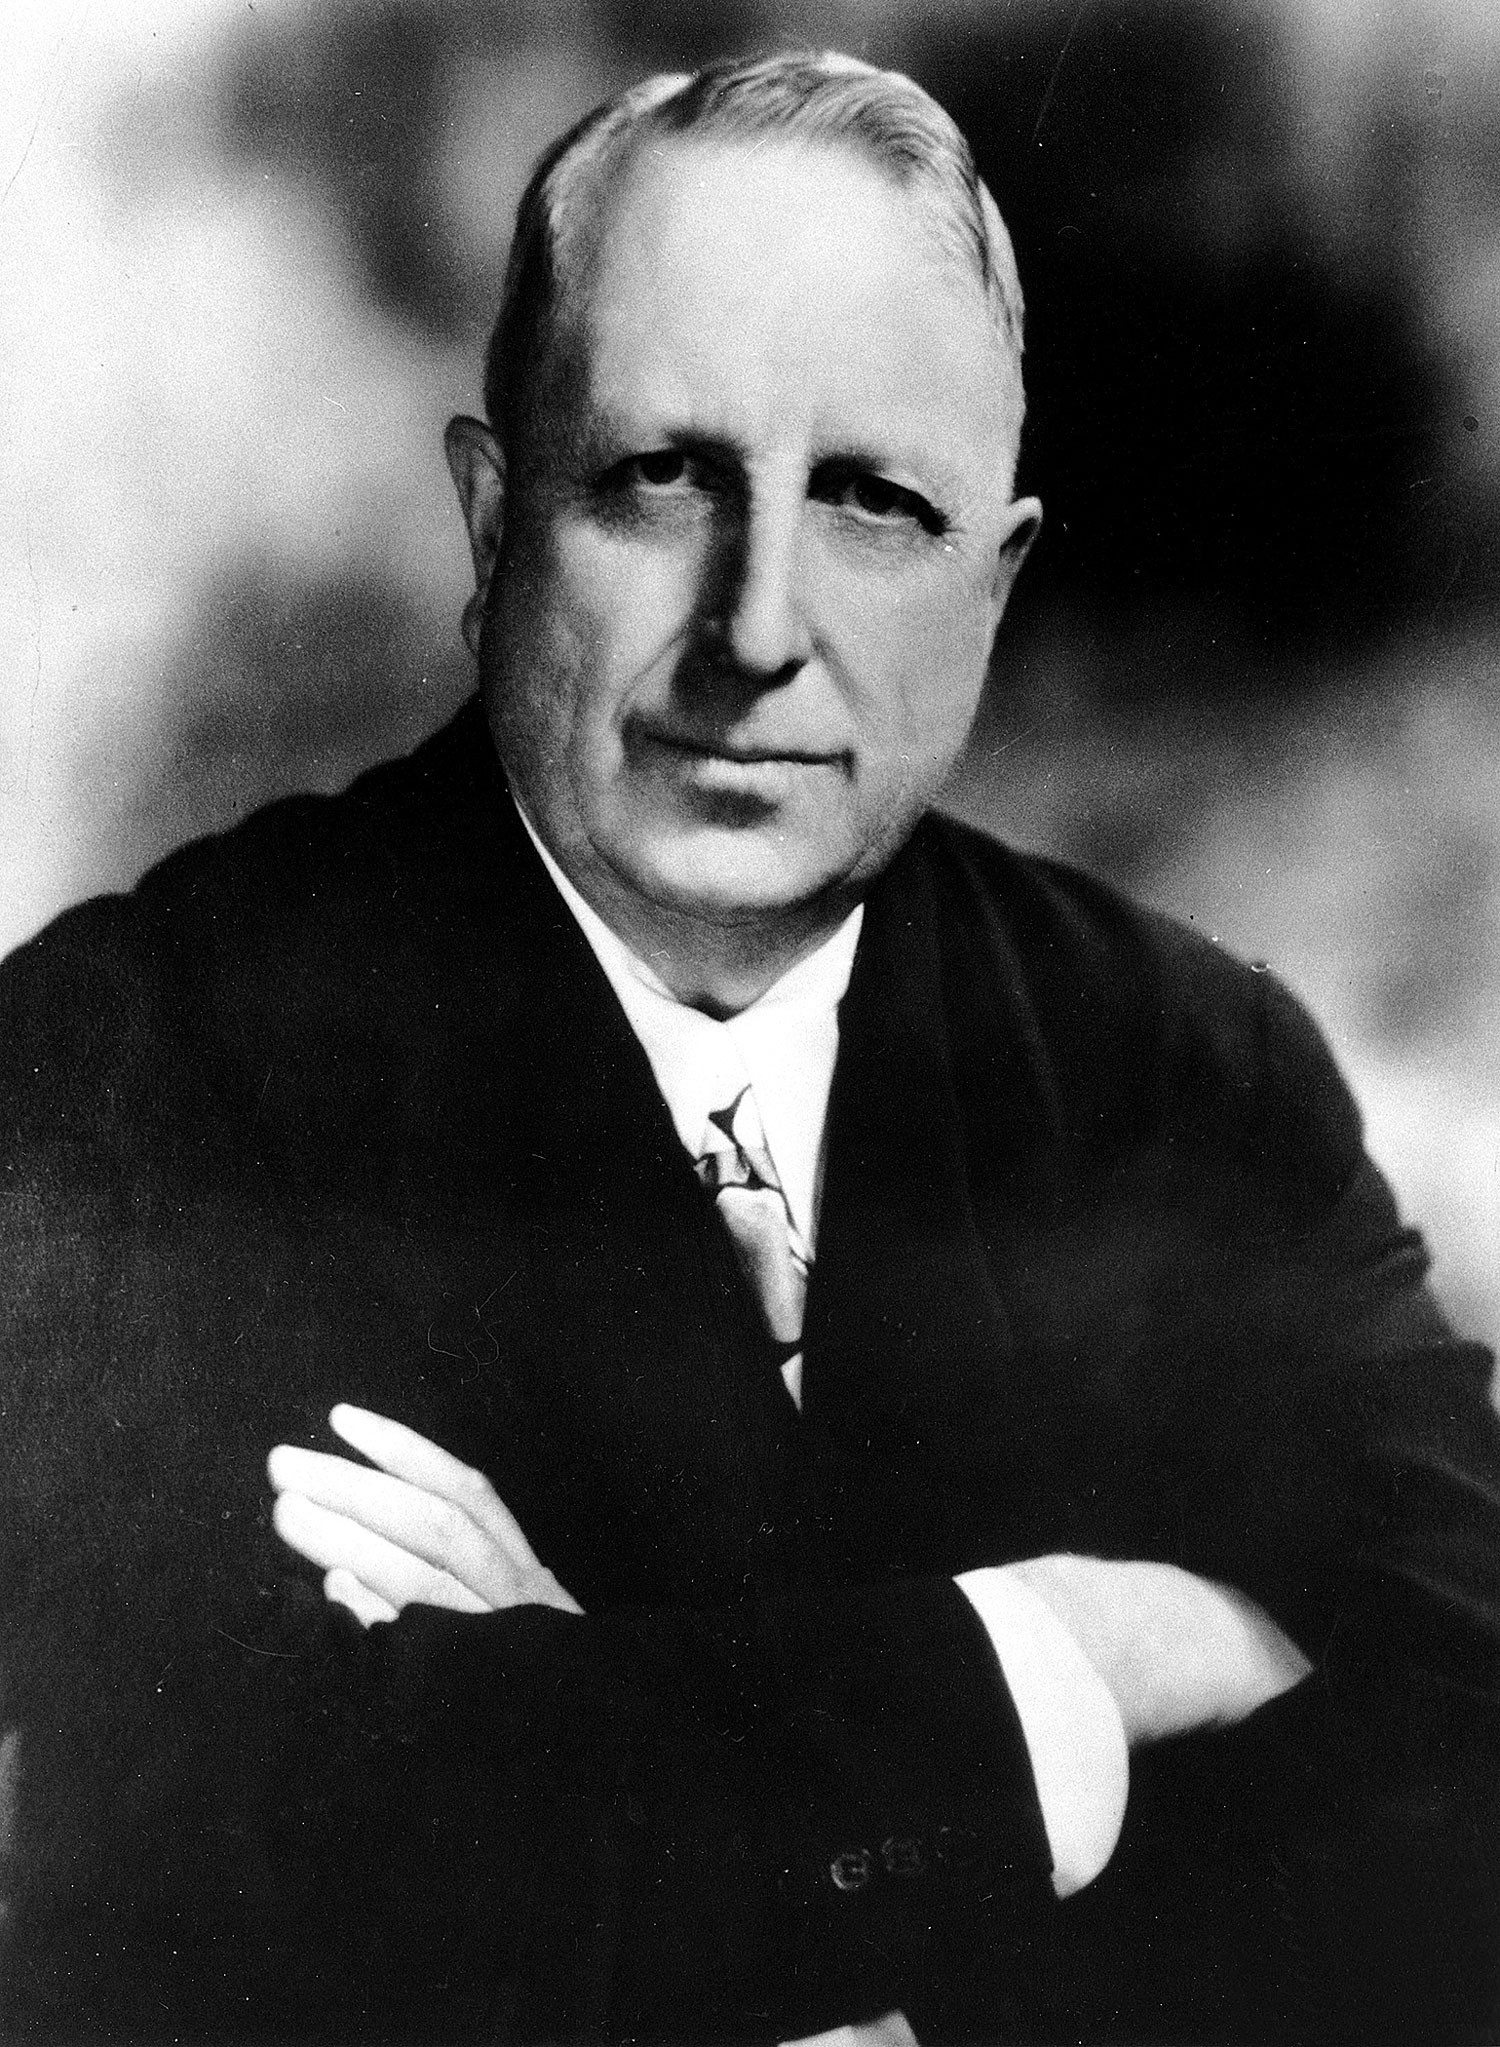 1935 AP File PhotoWIlliam Randolph Hearst dramatically changed The Examiner